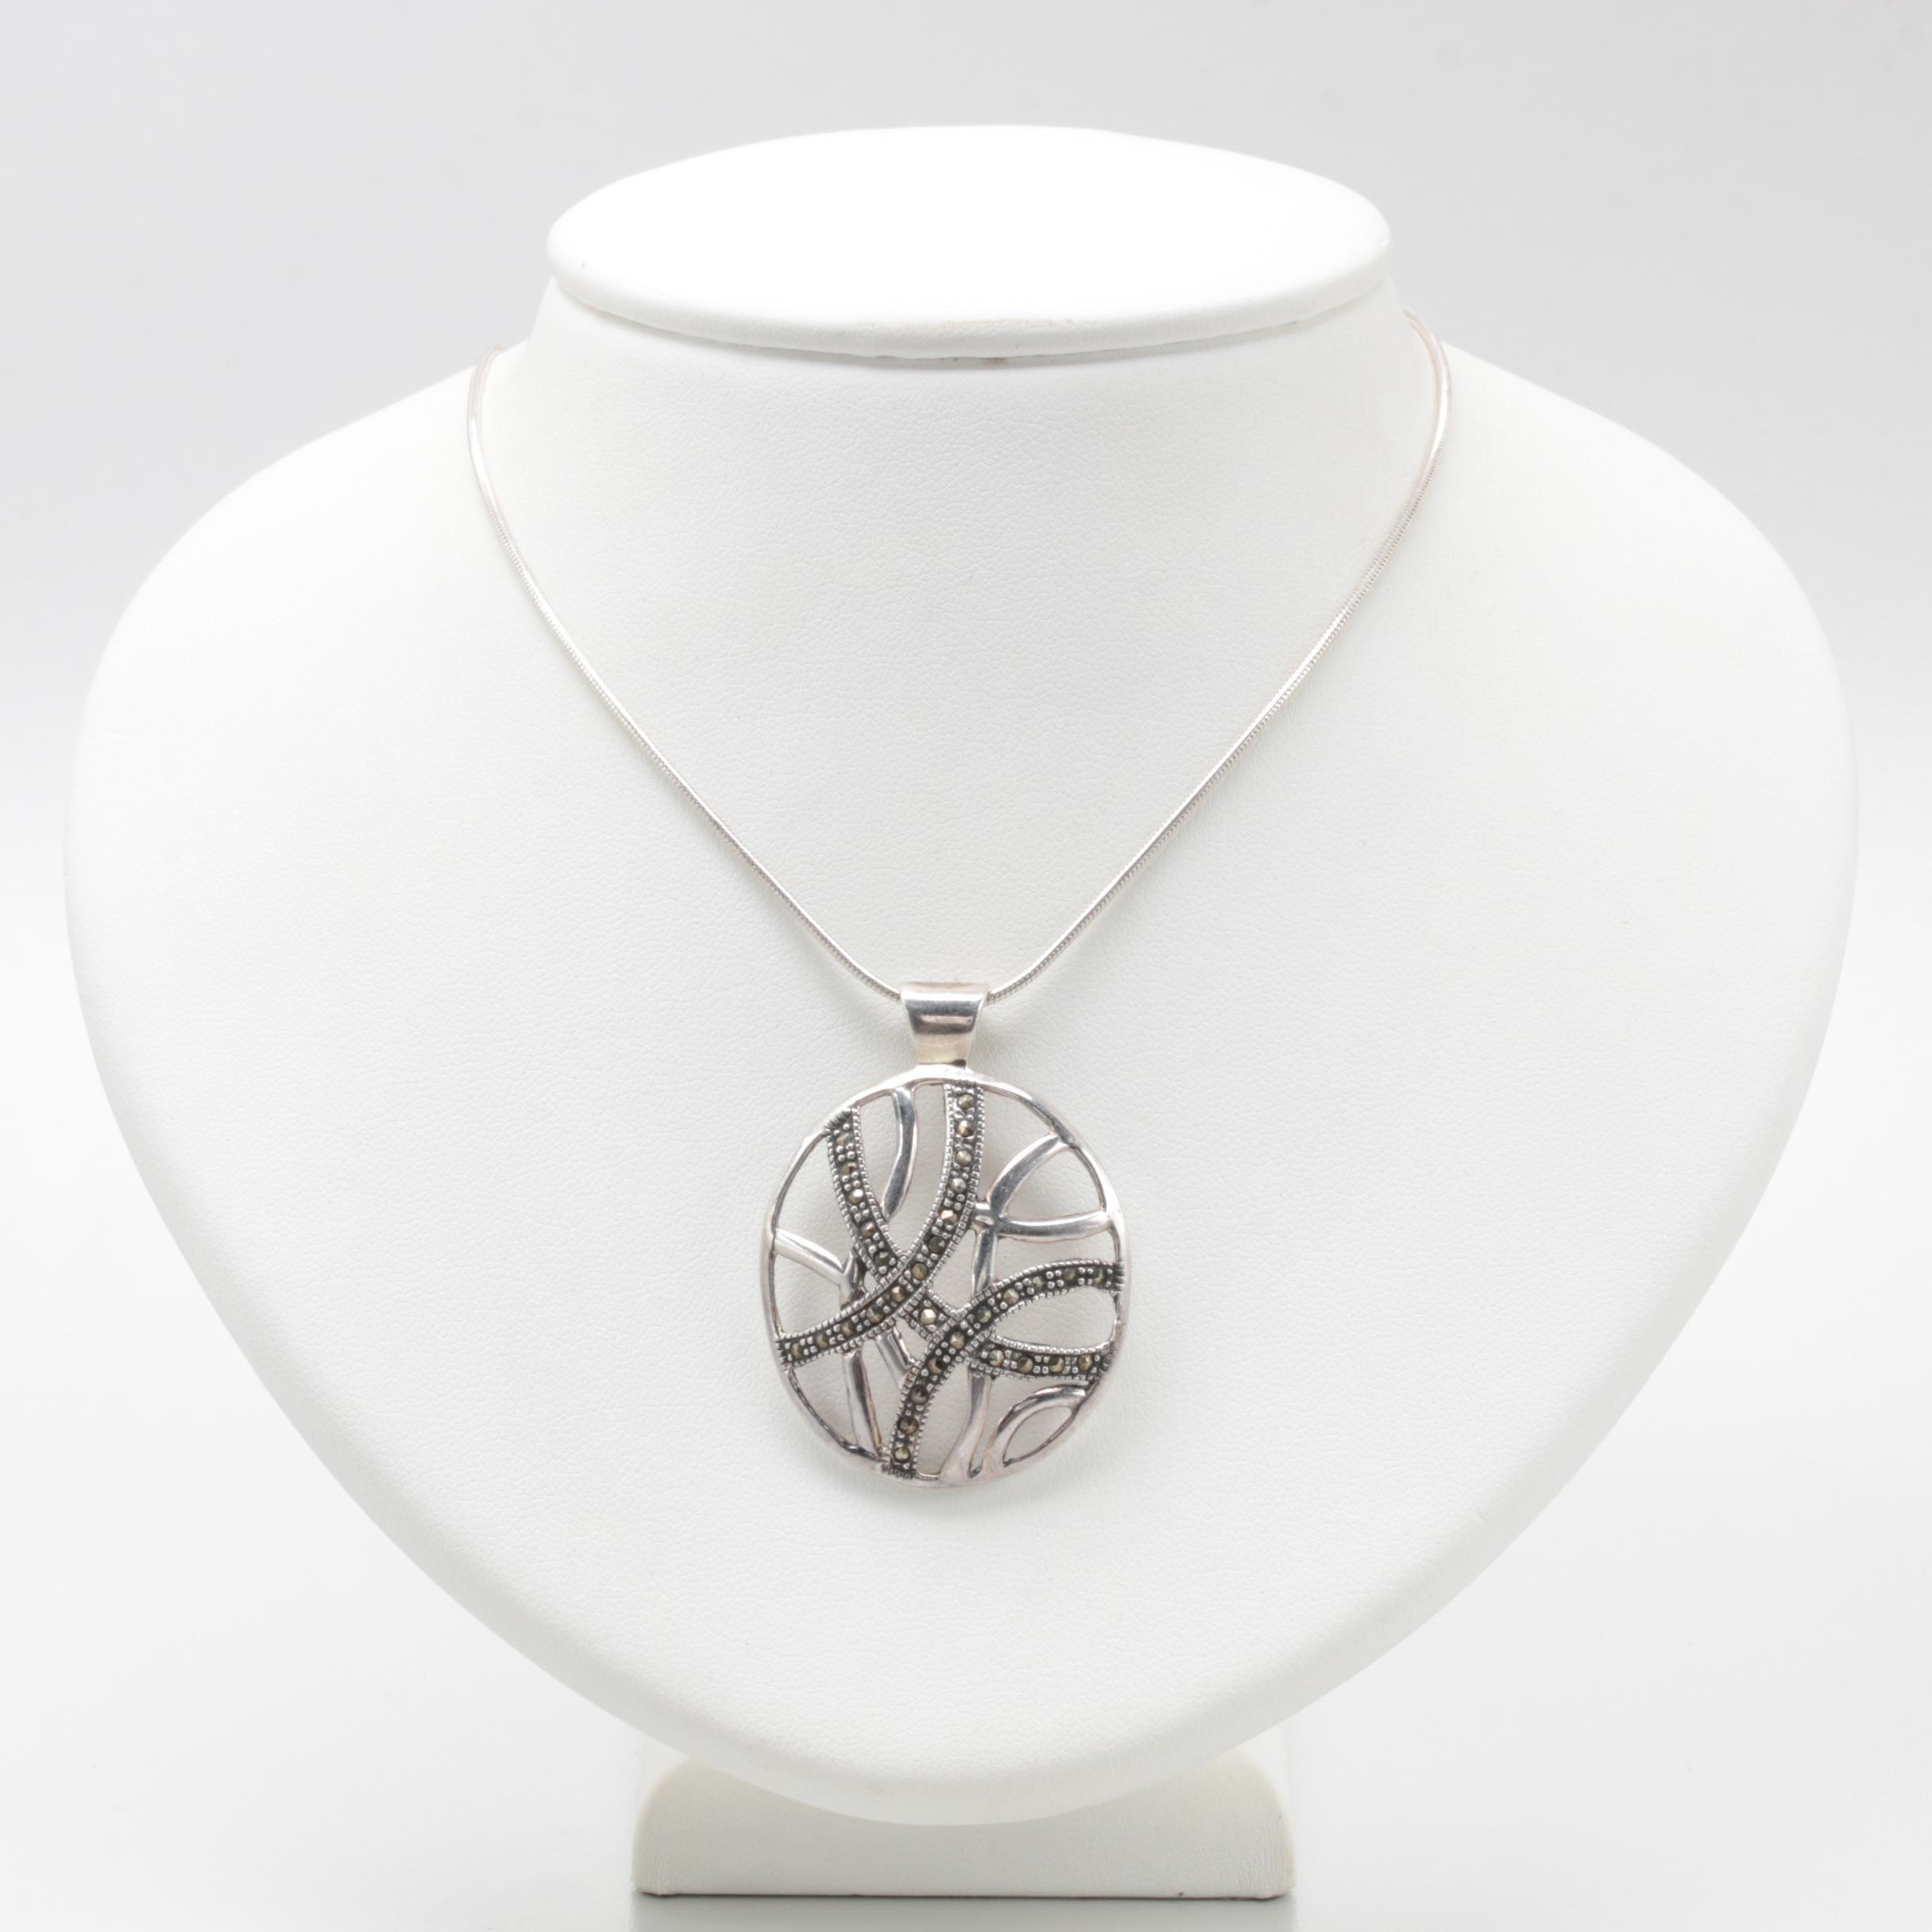 Paolo Romeo Sterling Silver Marcasite Pendant Necklace